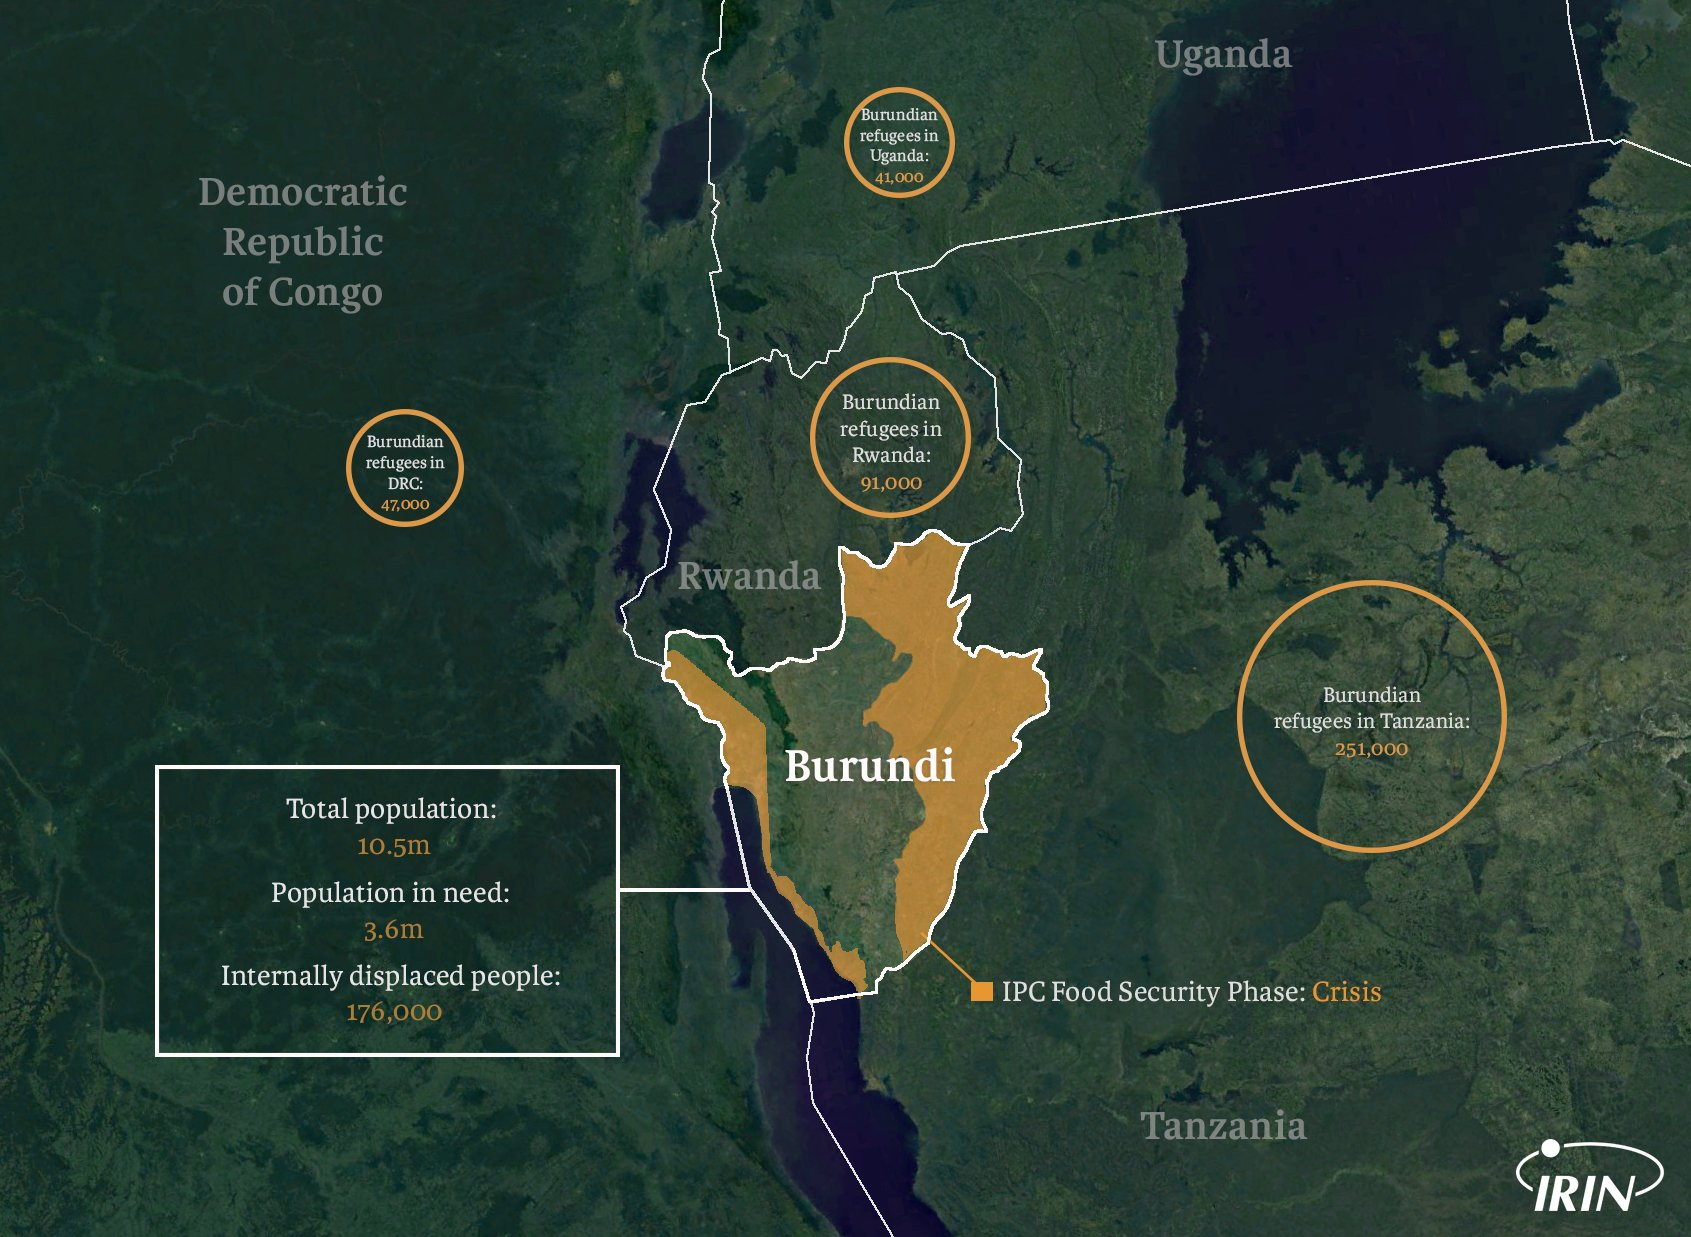 Map of Burundi and neighbours with refugee, IDP, and food security information